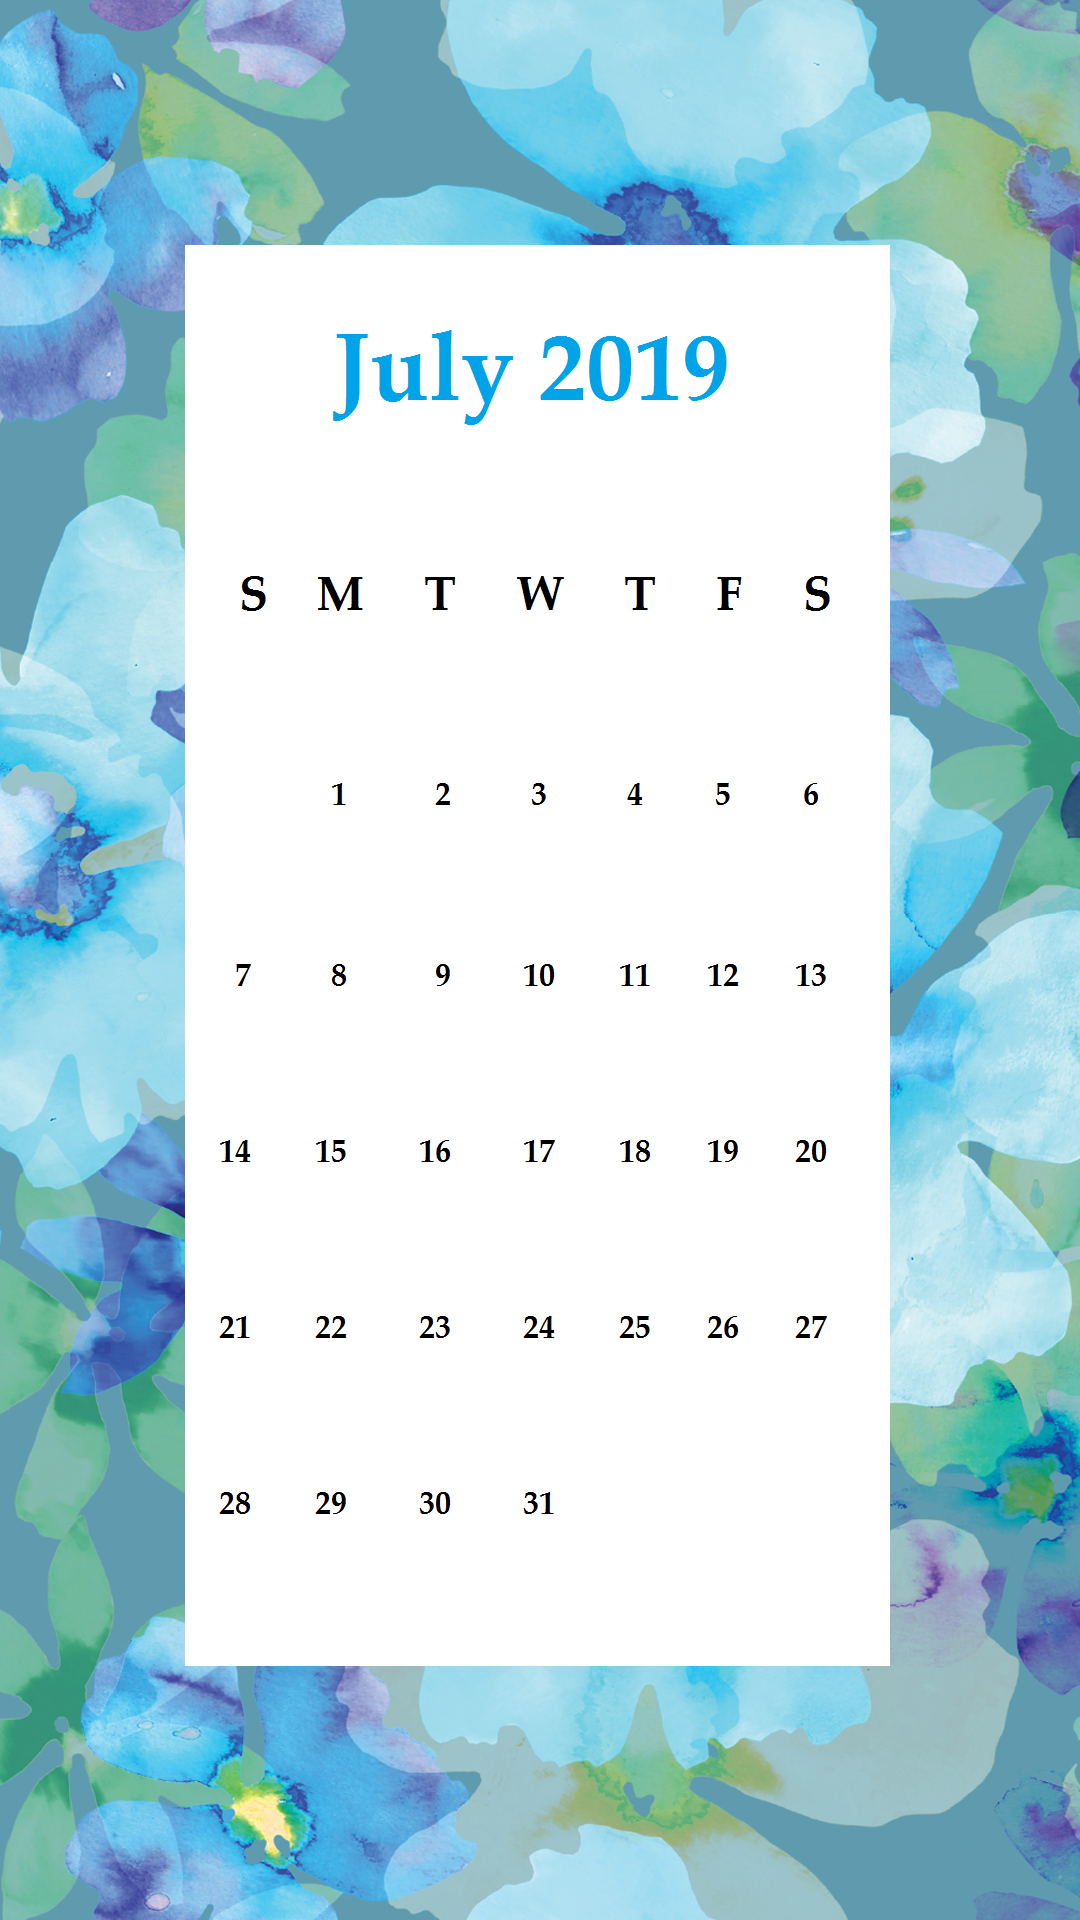 July 2019 Blueish Painting iPhone Calendar Wallpaper